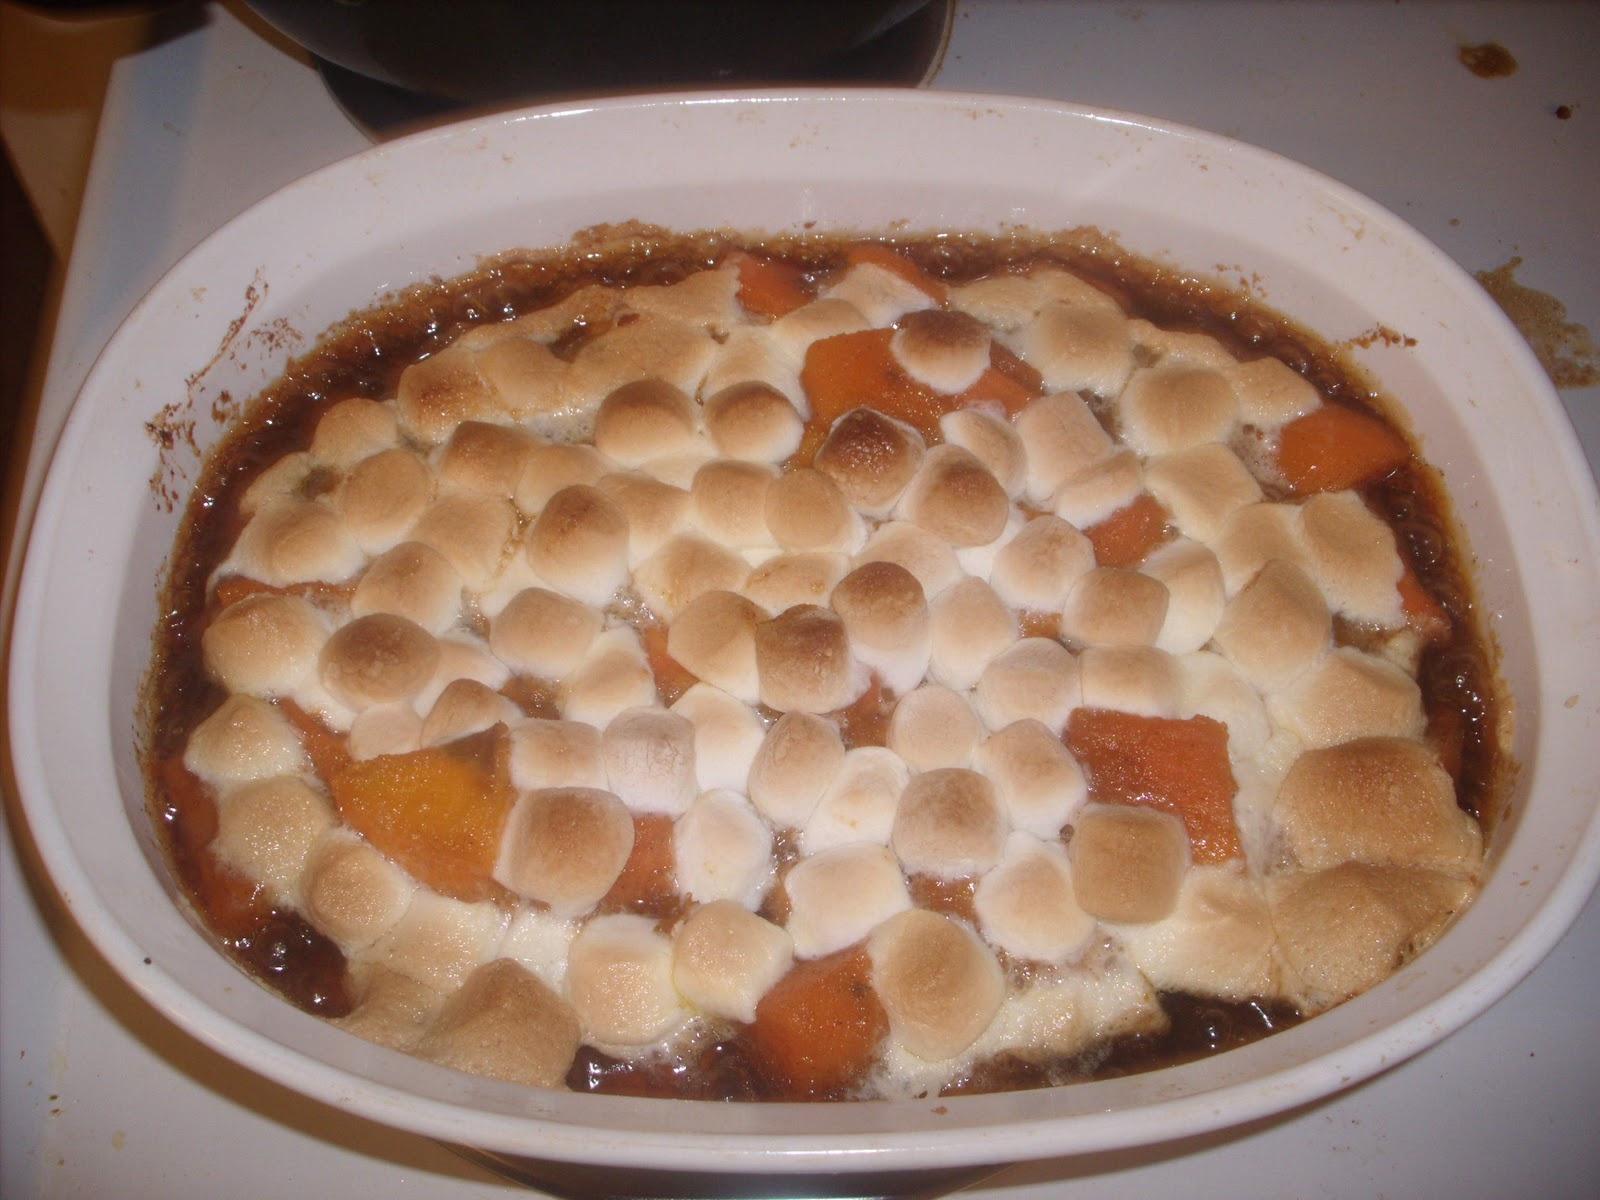 candied sweet potatoes with marshmallows on top